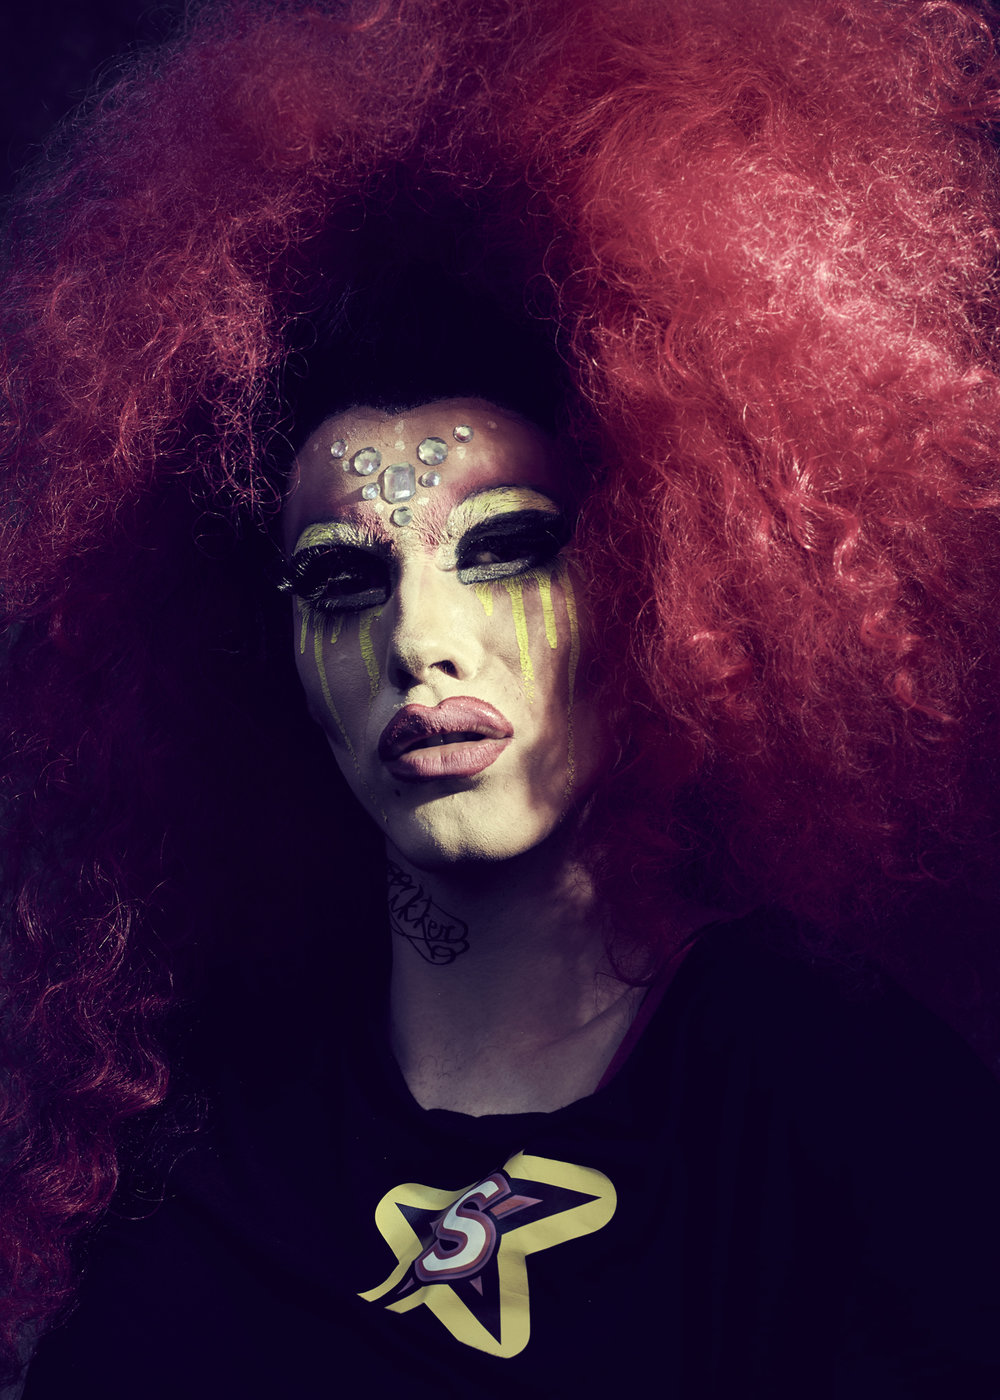 Ambiguous as to how this Drag Queen arrived in front of the camera. The S t-shirt stands for superstar?